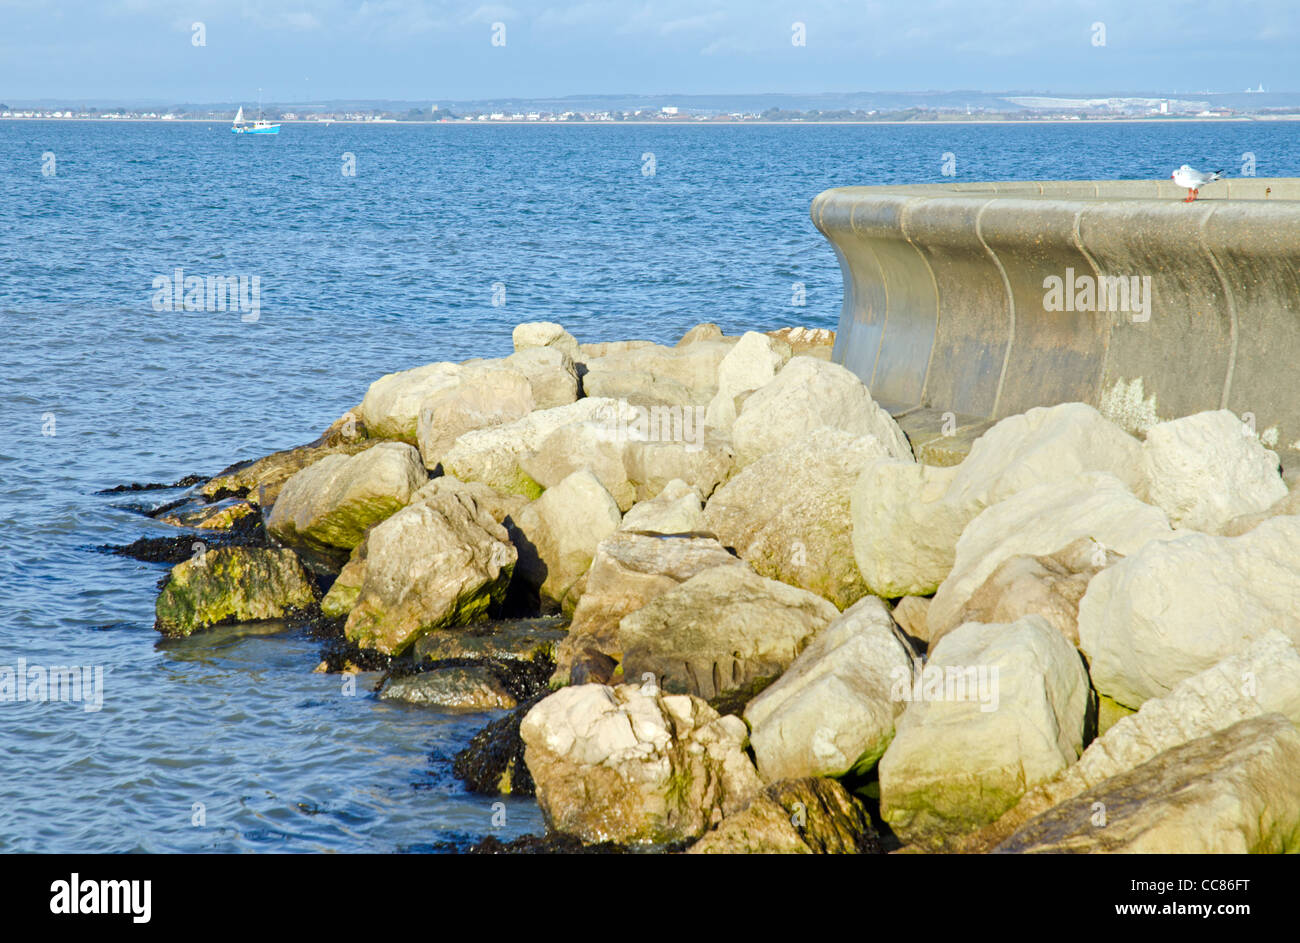 Rocks by the sea wall as part of the sea defence on the coast at Ryde, Isle of Wight, England, UK. - Stock Image